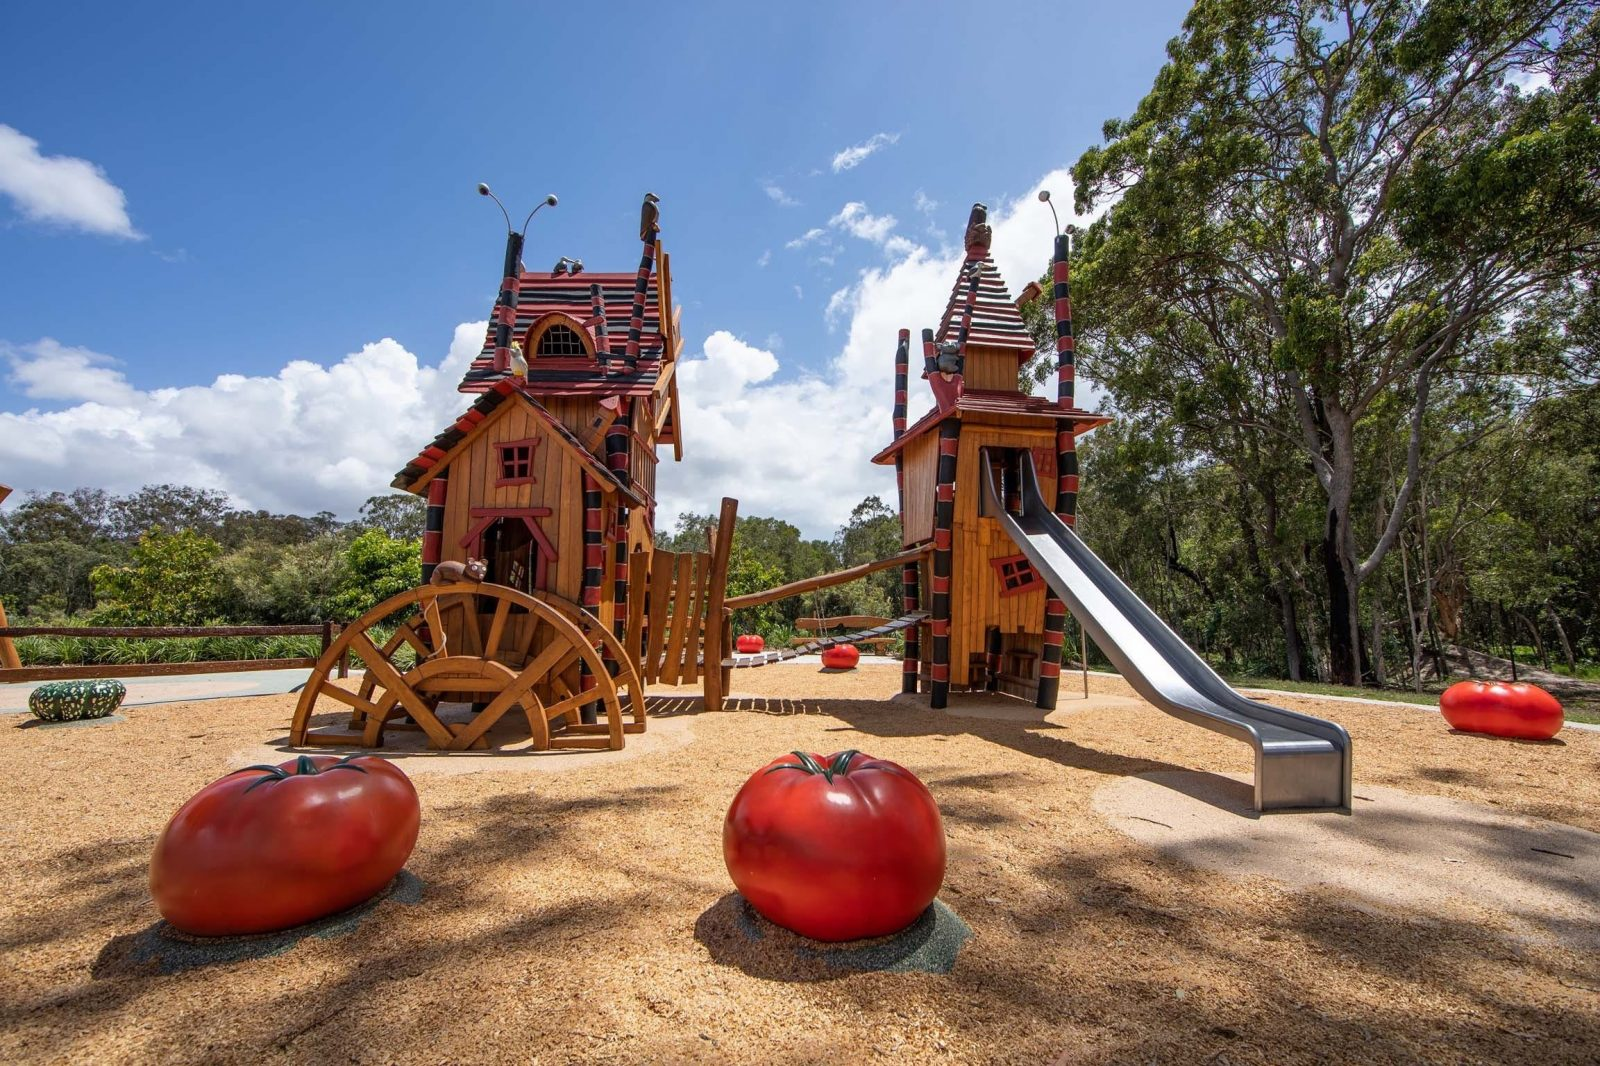 Two Halloween themed playground towers with a metal slide and two over sized tomatoes in foreground